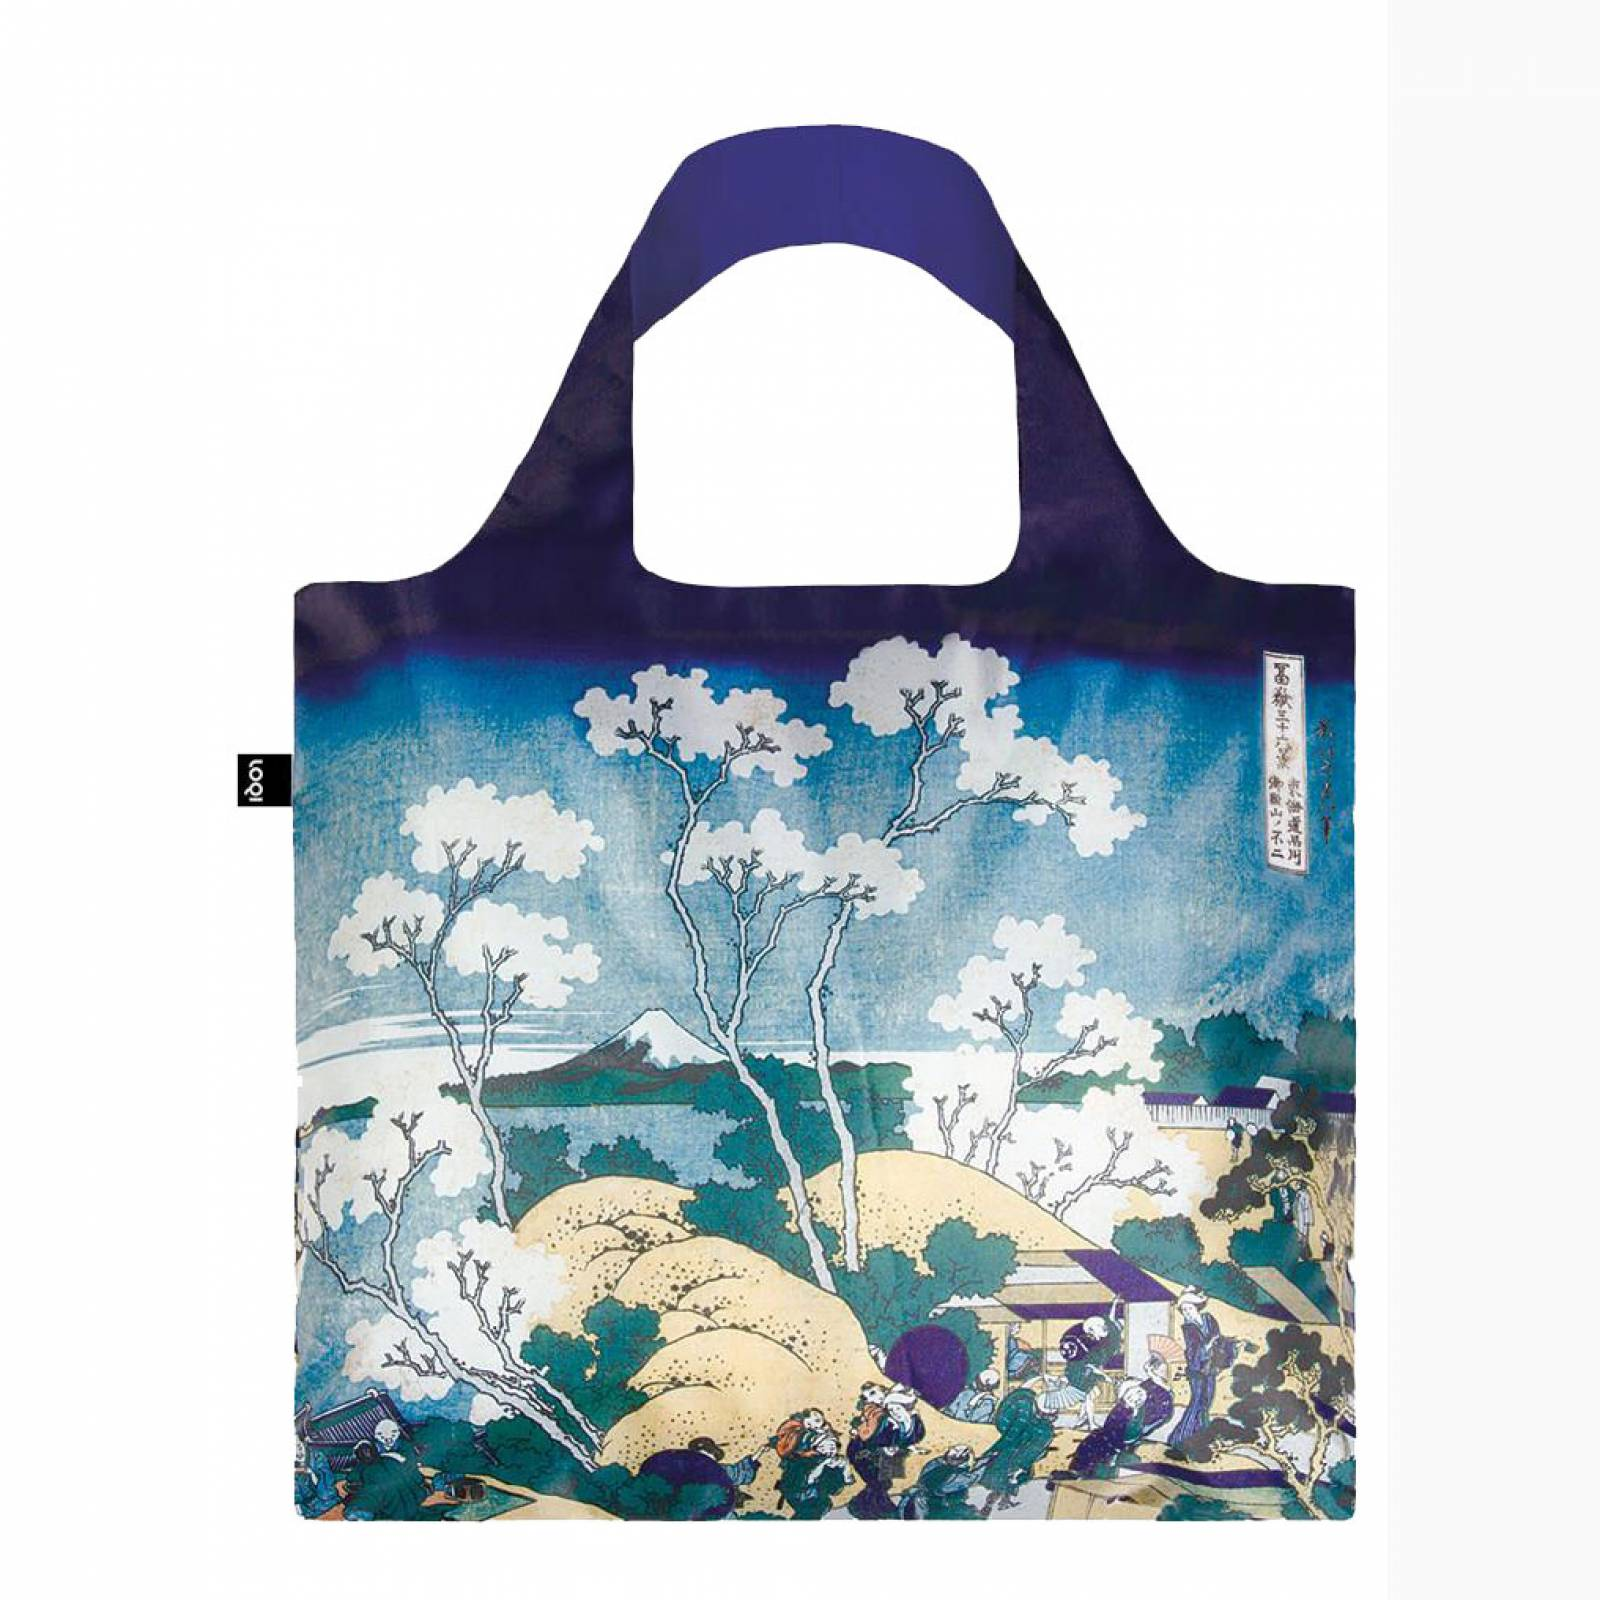 Fuji Hokusai - Reusable Tote Bag With Pouch